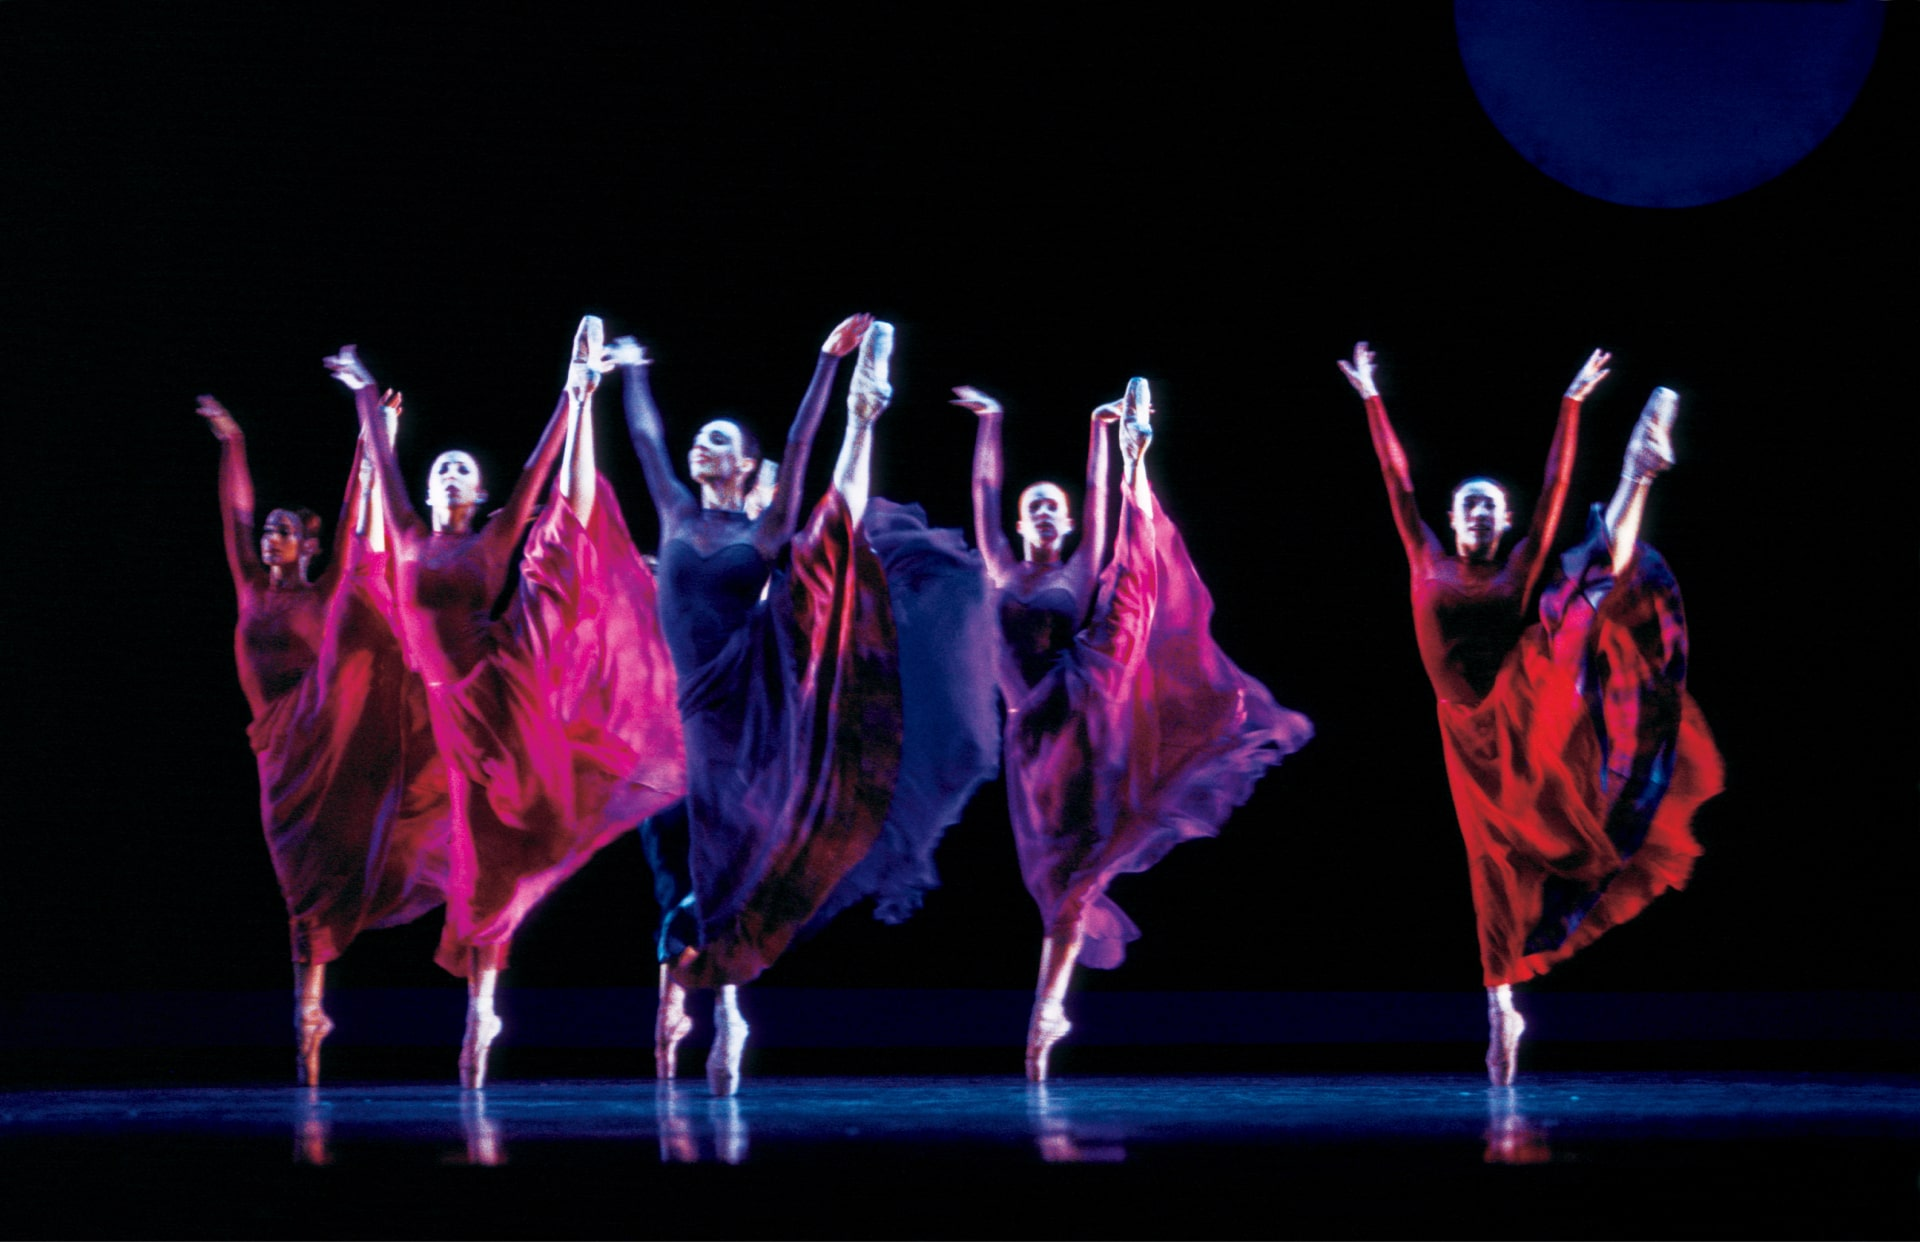 Ballerinas in brightly coloured monochrome dresses dance on point against black sky and edge of full moon.